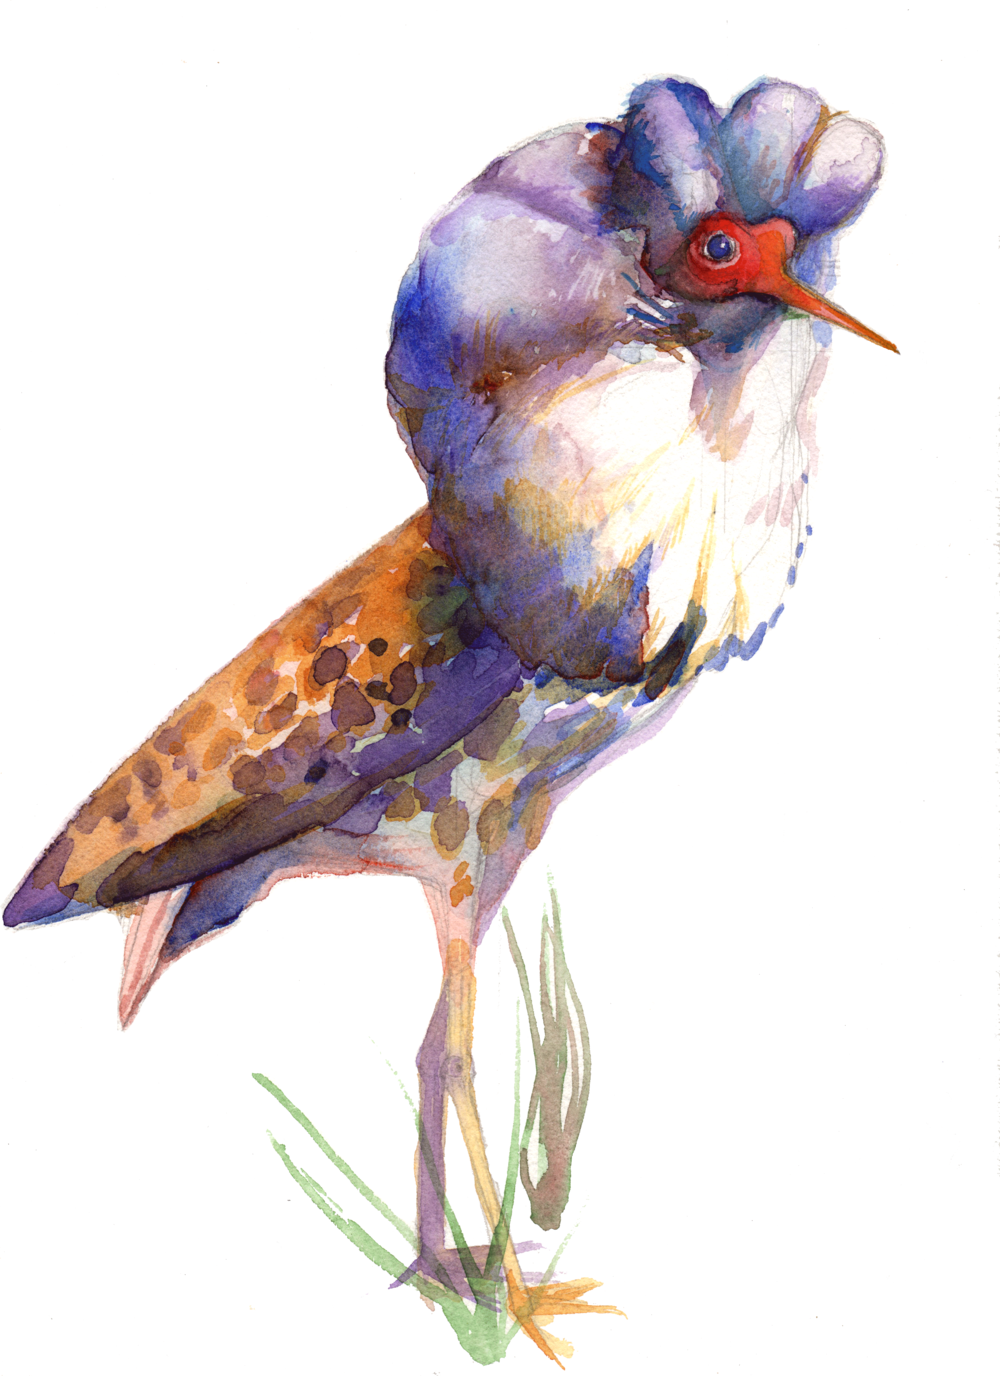 This is a ruff. It is my favorite painting I've done this year (after the one of my best friends before they got married), and it belongs in this post. This bird is so wonderful. He is unapologetic. He is a walking celebration.